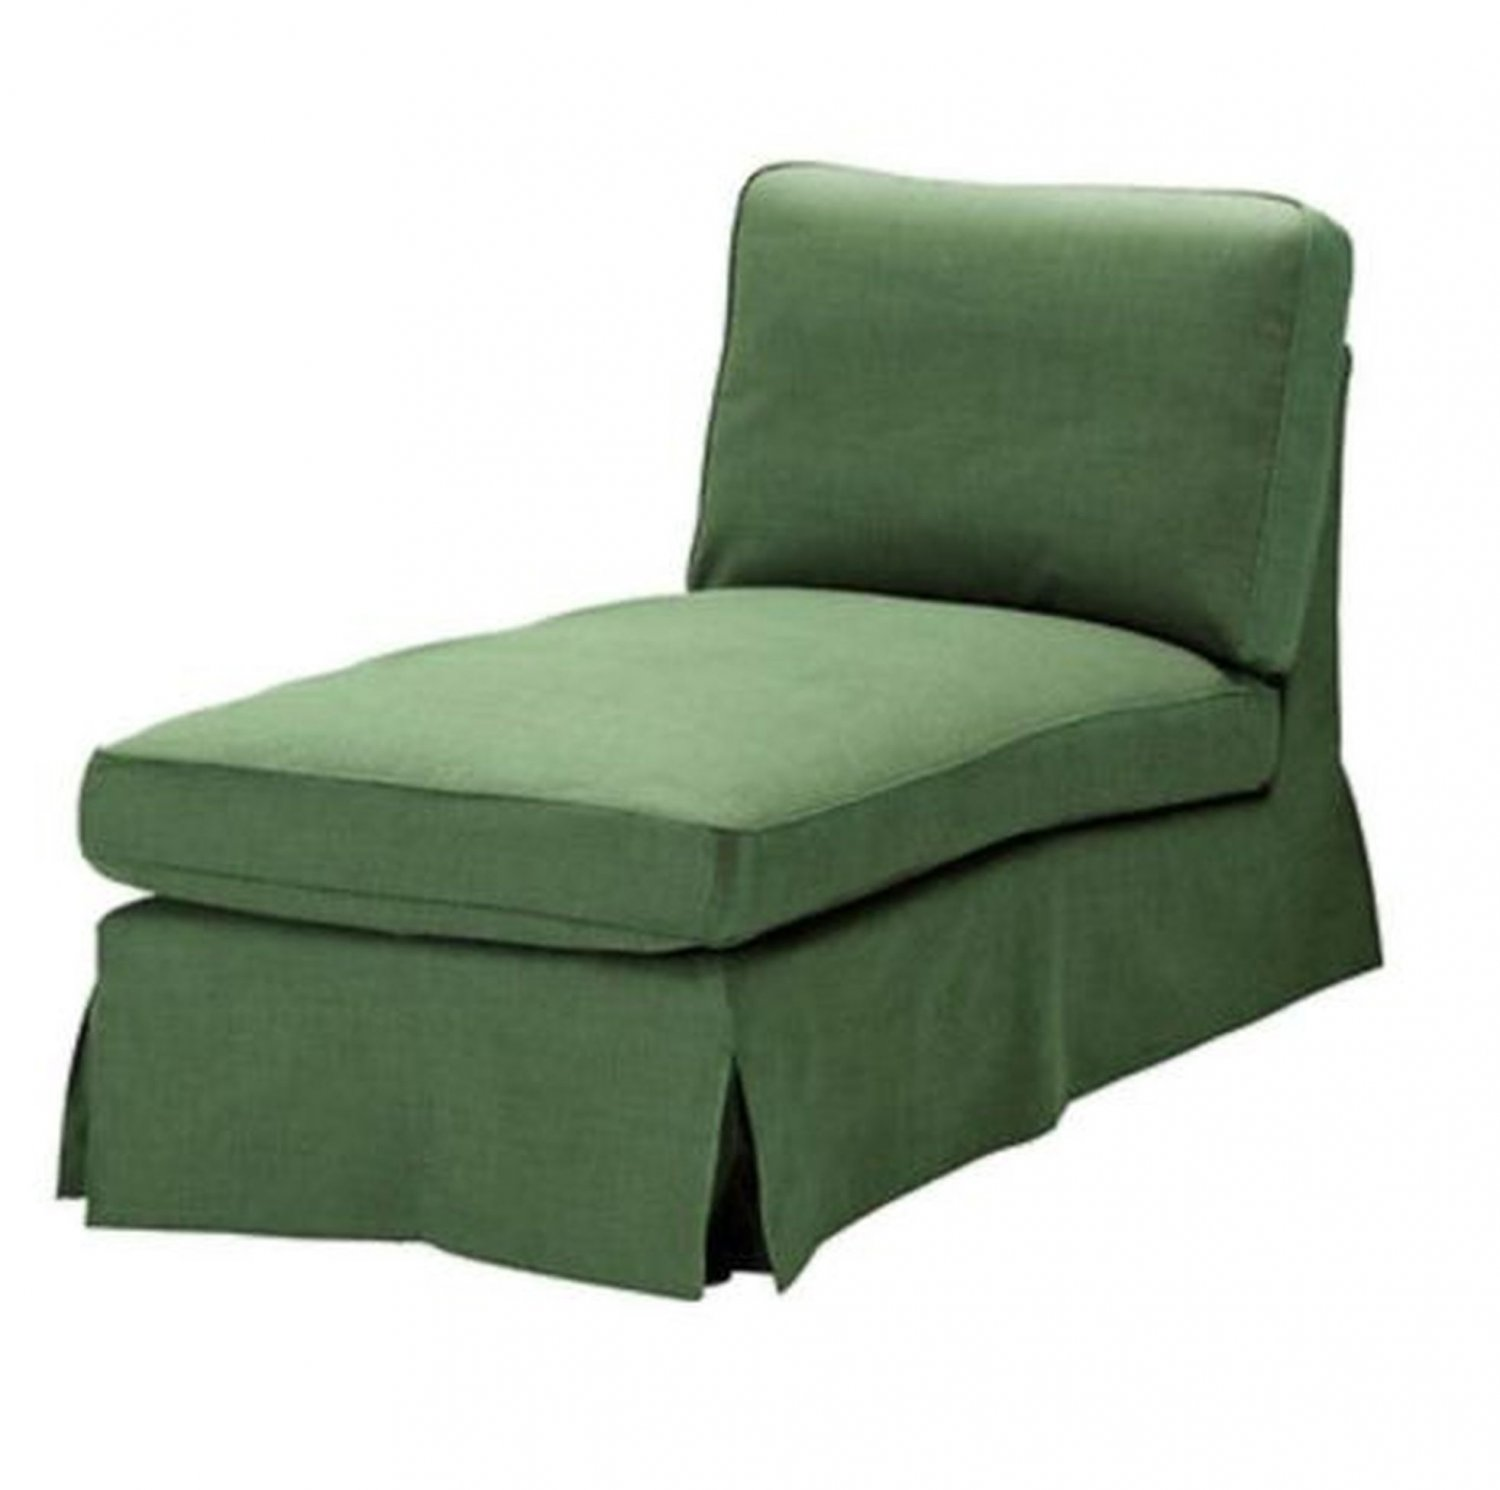 Ikea ektorp chaise longue cover slipcover svanby green for Chaise longue cover